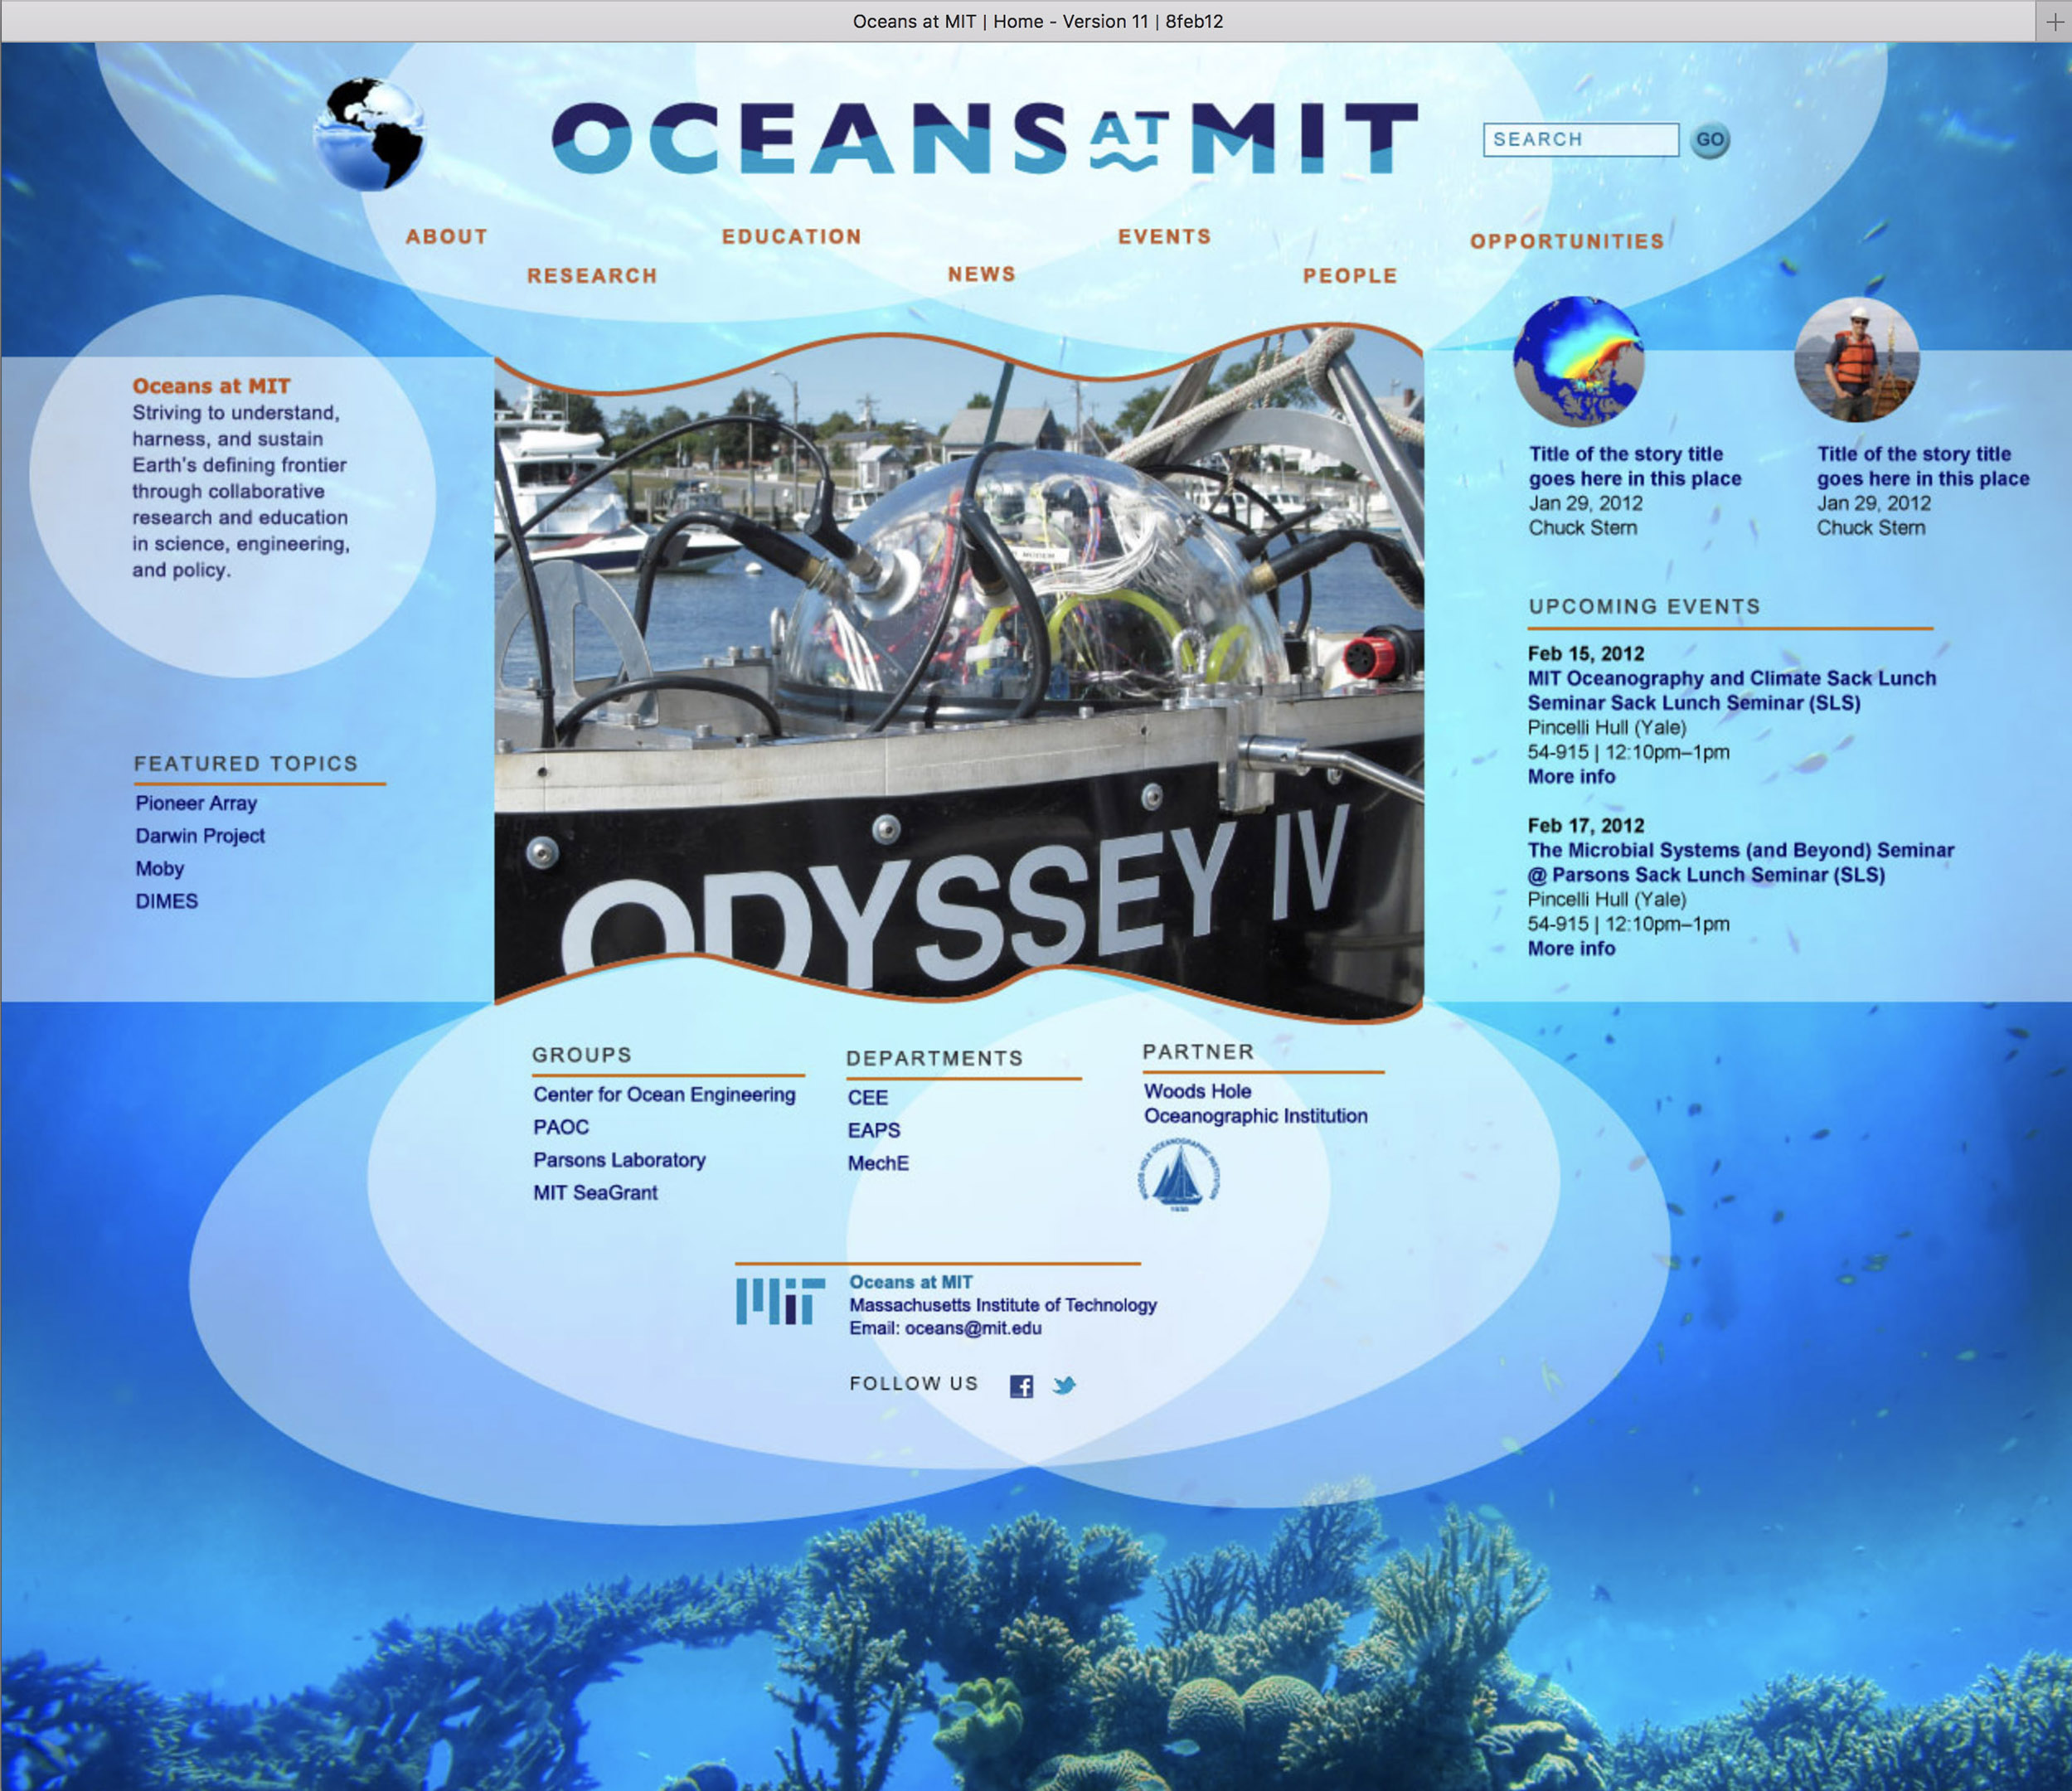 Mockup for Oceans at MIT website, 3 of 3